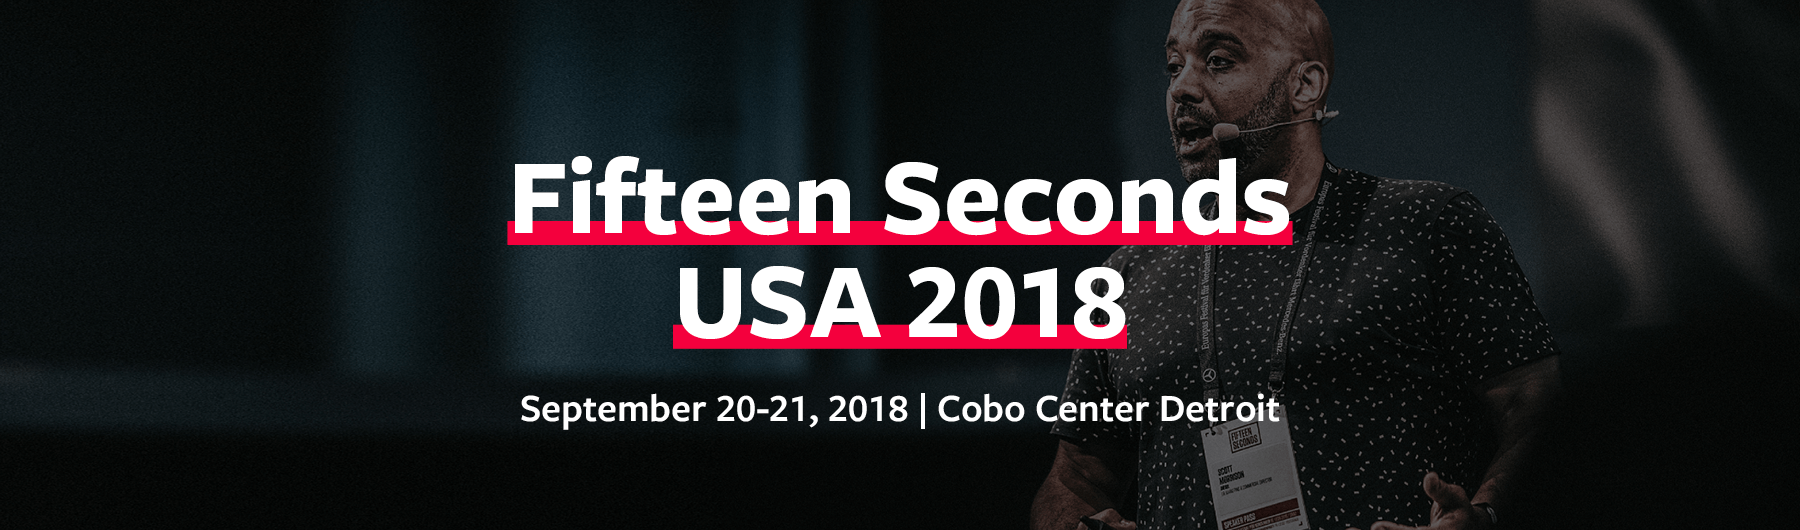 Fifteen Seconds USA 2018